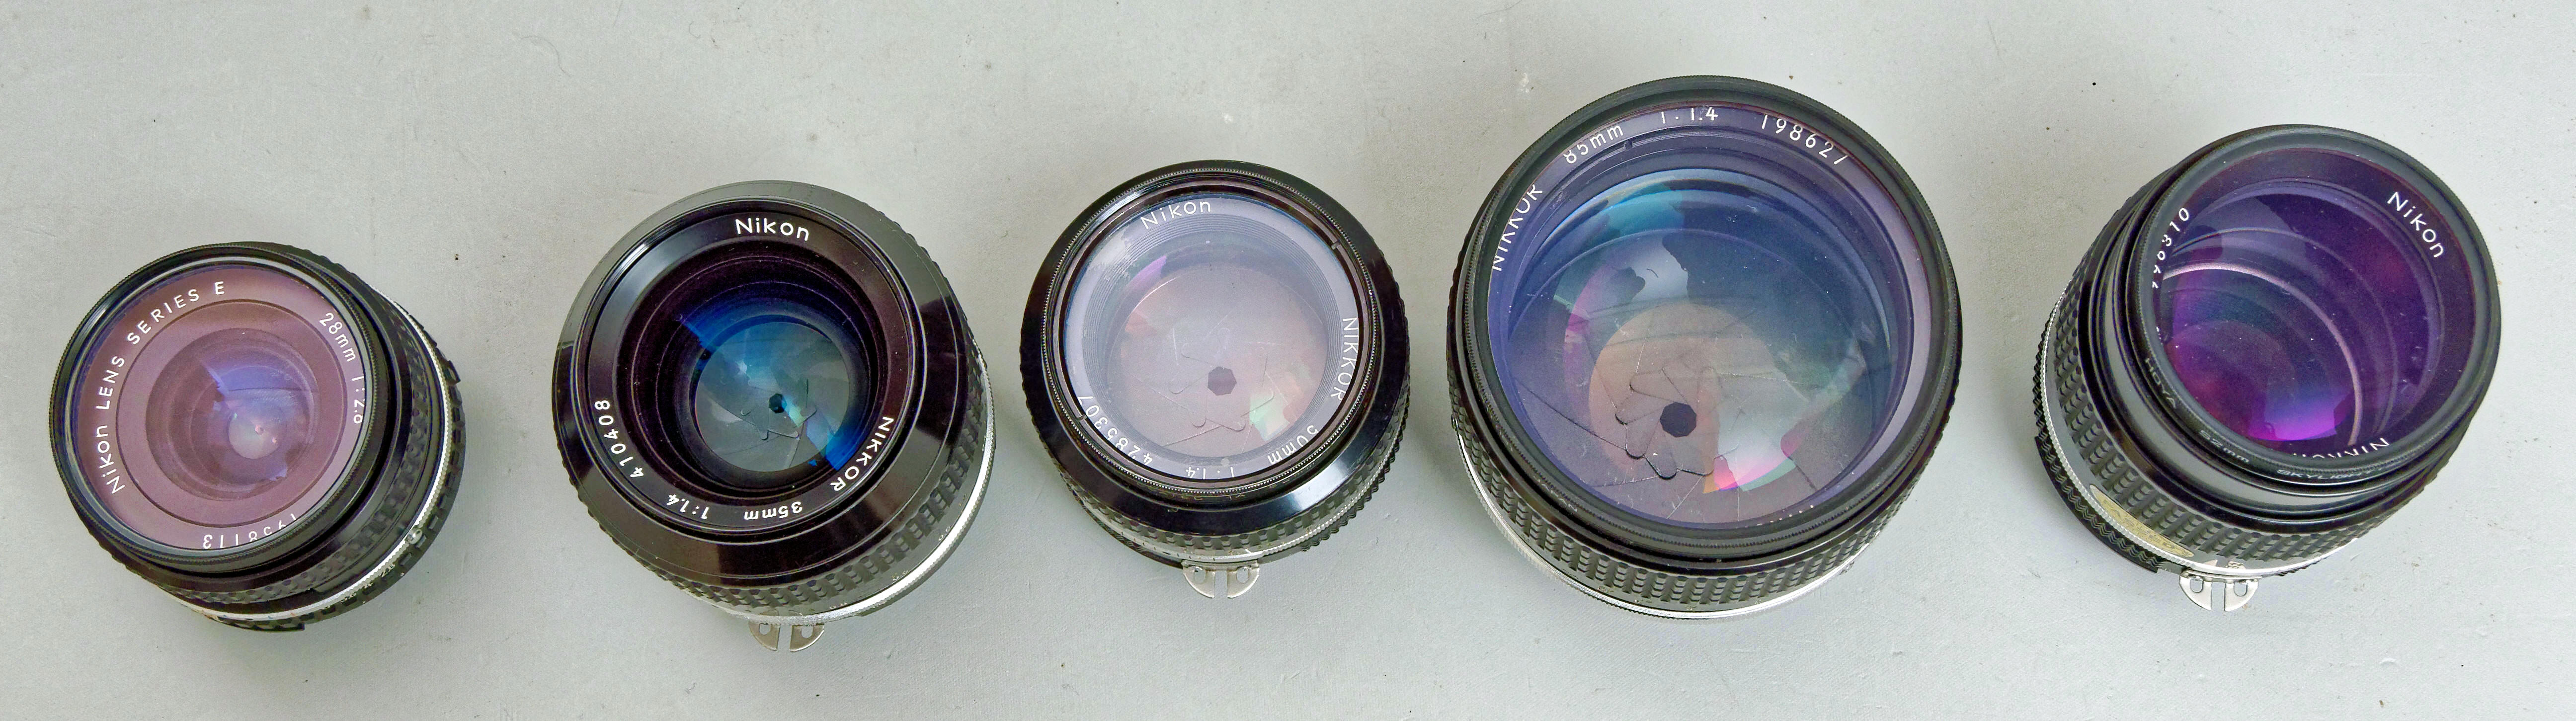 Nikon-lenses-6.jpeg